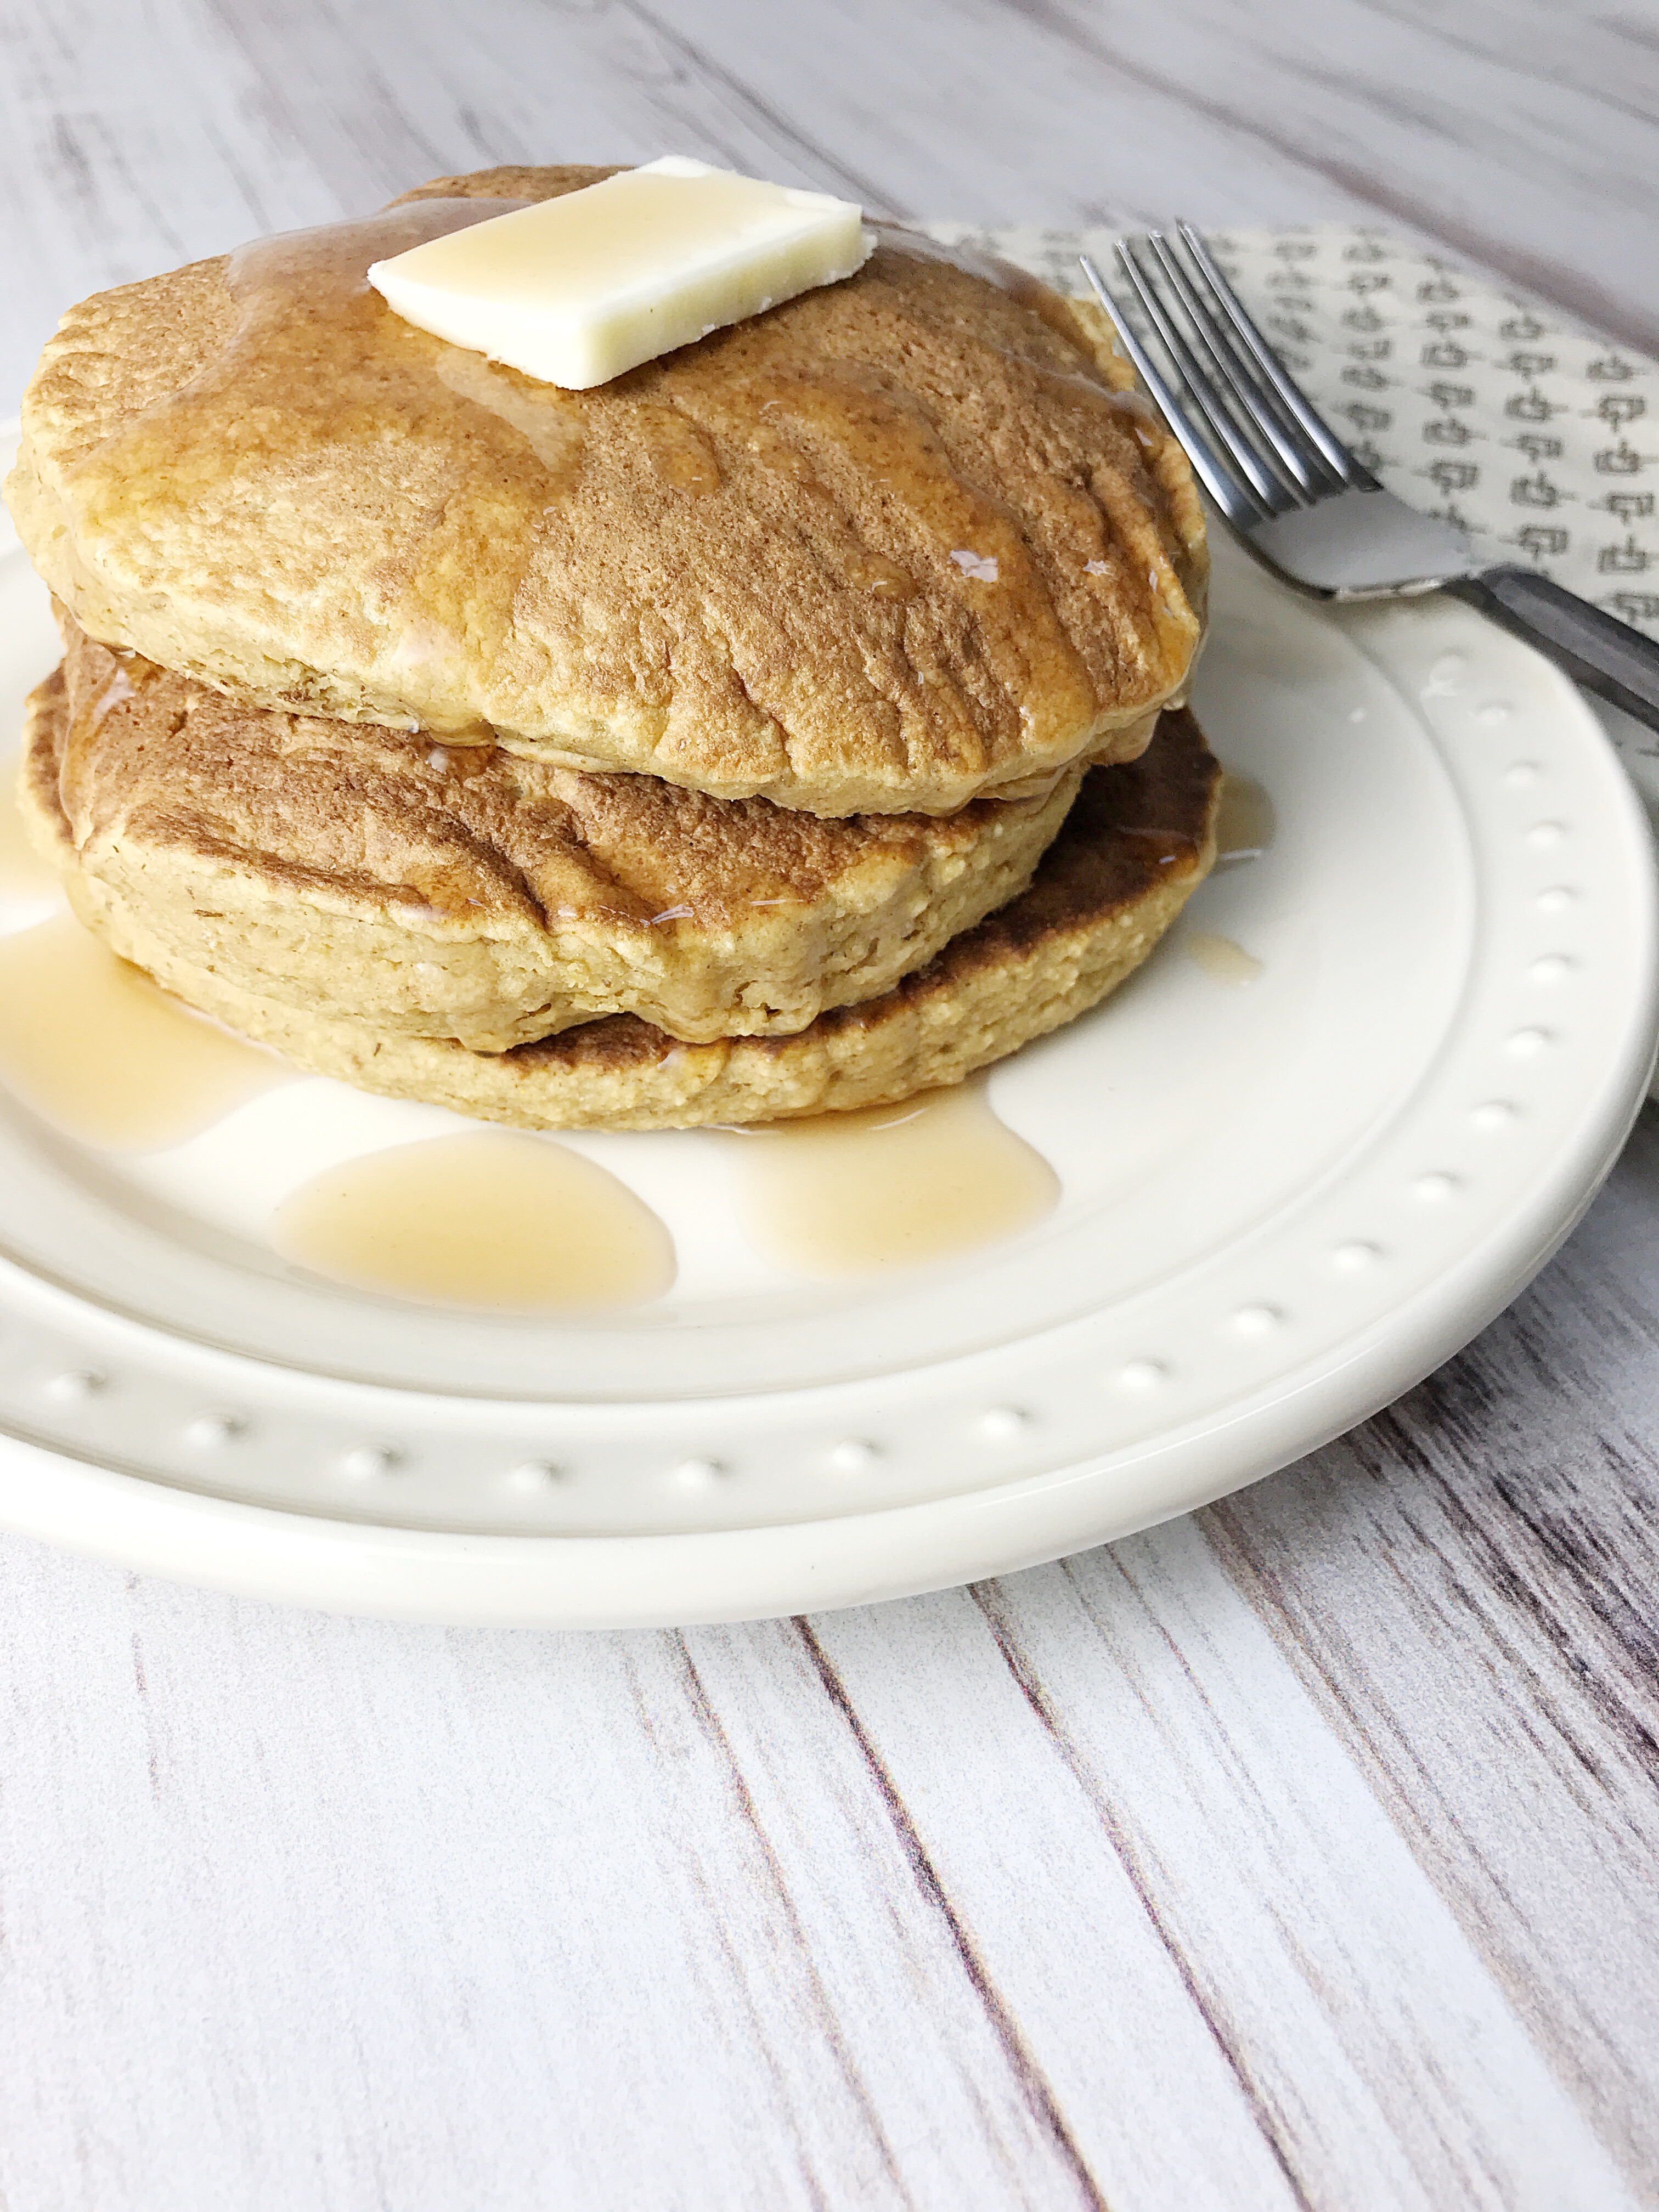 How To Make Ihop Country Griddle Cakes